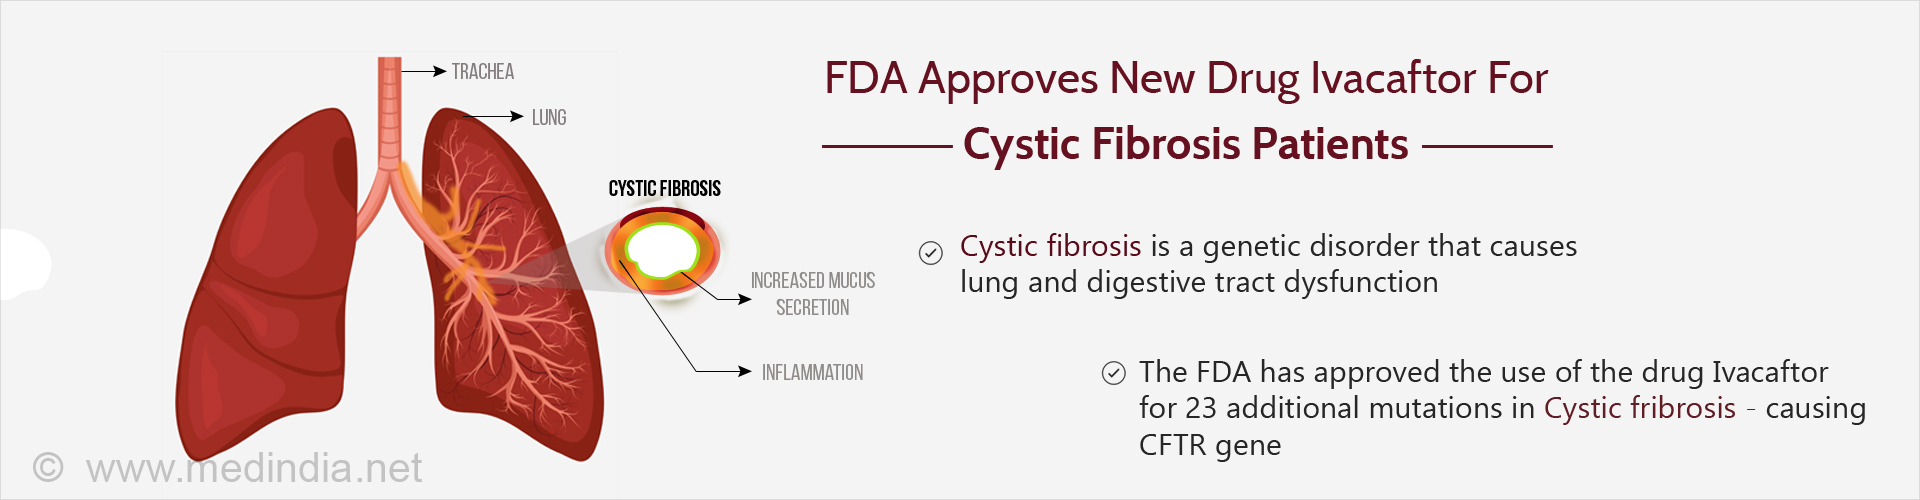 FDA Approves Ivacaftor Drug for Cystic Fibrosis : More Patients to Benefit